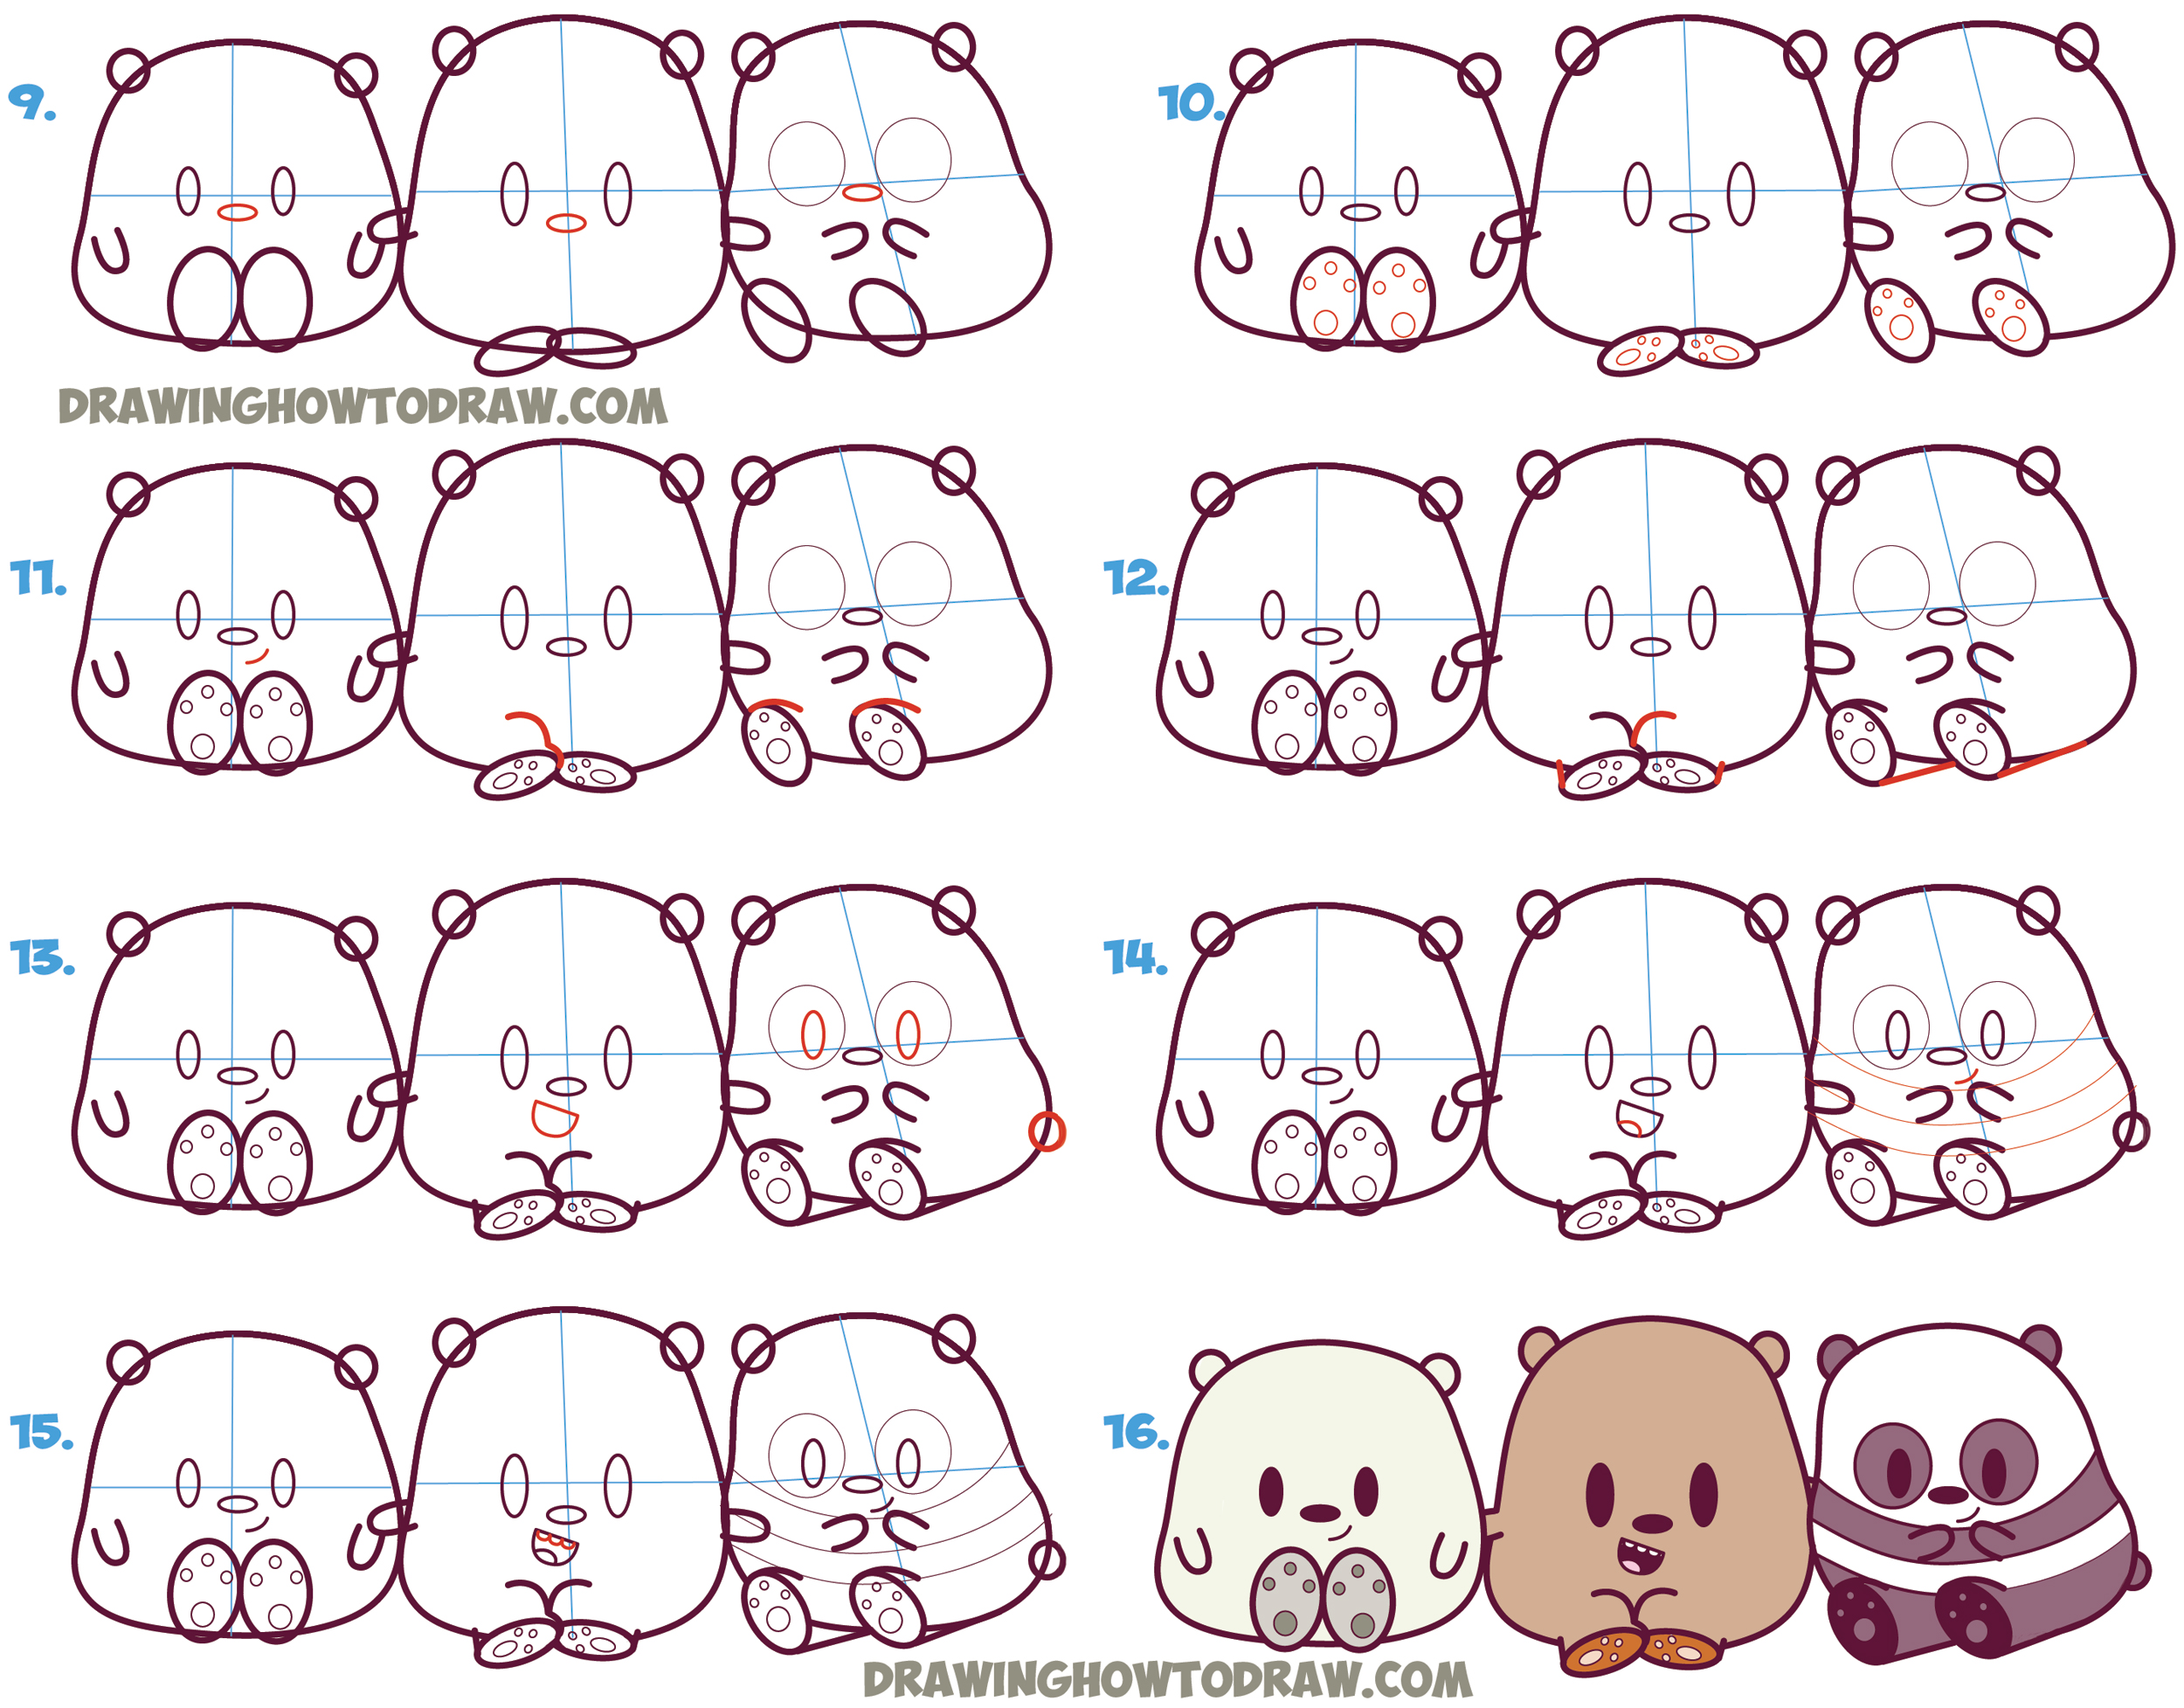 Learn How to Draw We Bare Bears (Cute / Kawaii / Chibi / Baby Style) - Grizzly, Panda, and Ice Bear - in Simple Step by Step Drawing Lesson